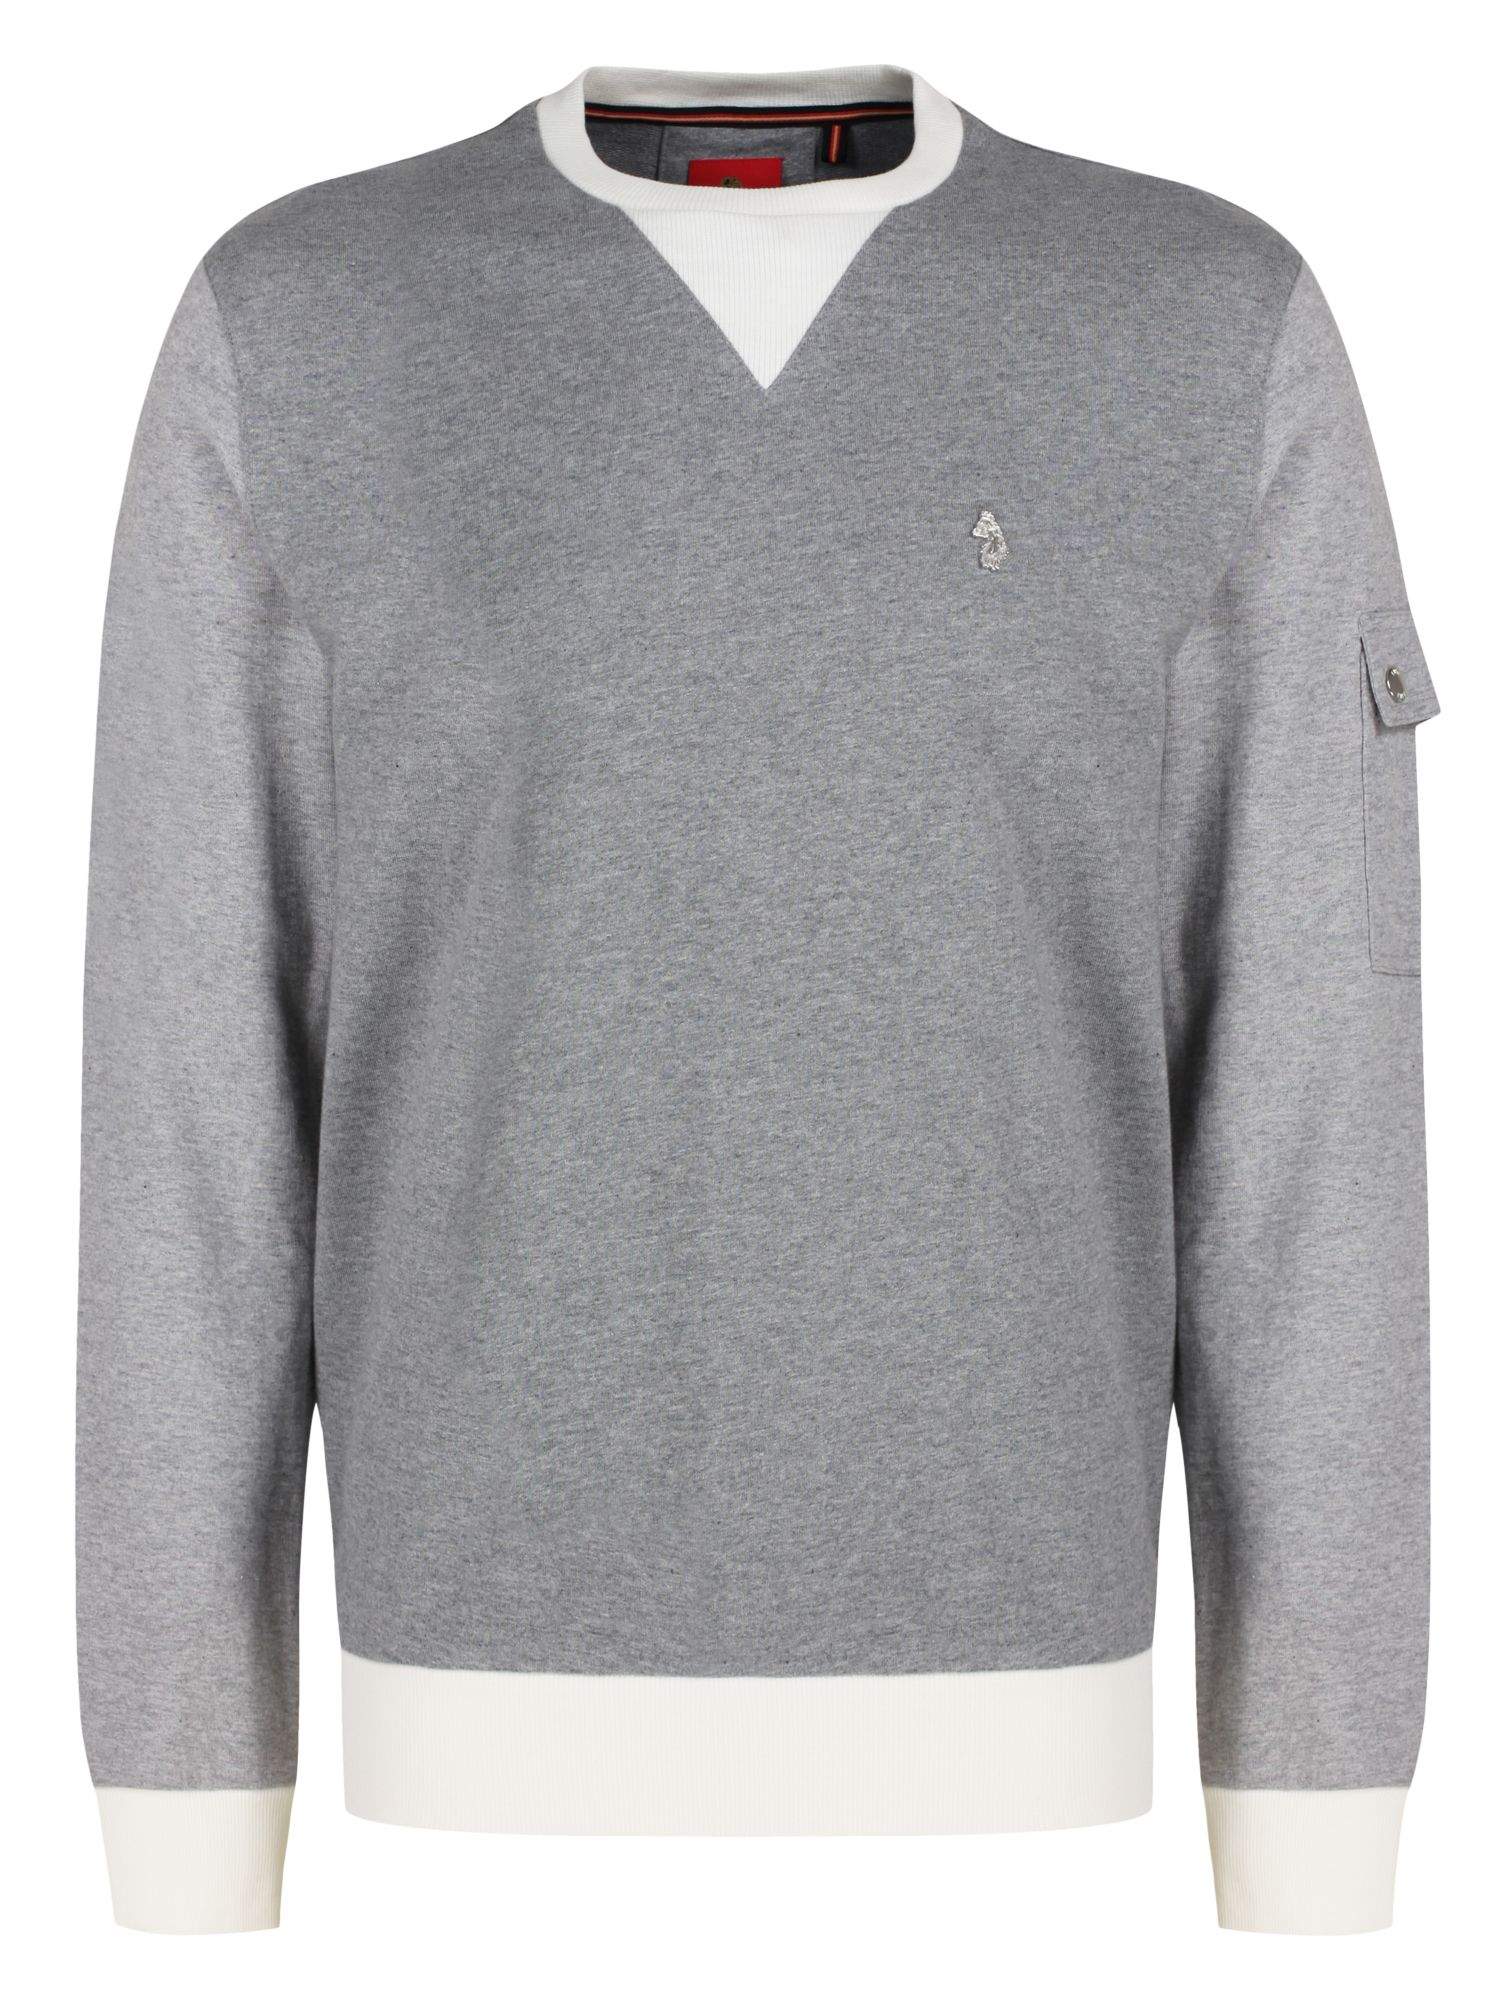 Men's Luke 1977 Tri Max Multi Colour Sweat, Grey